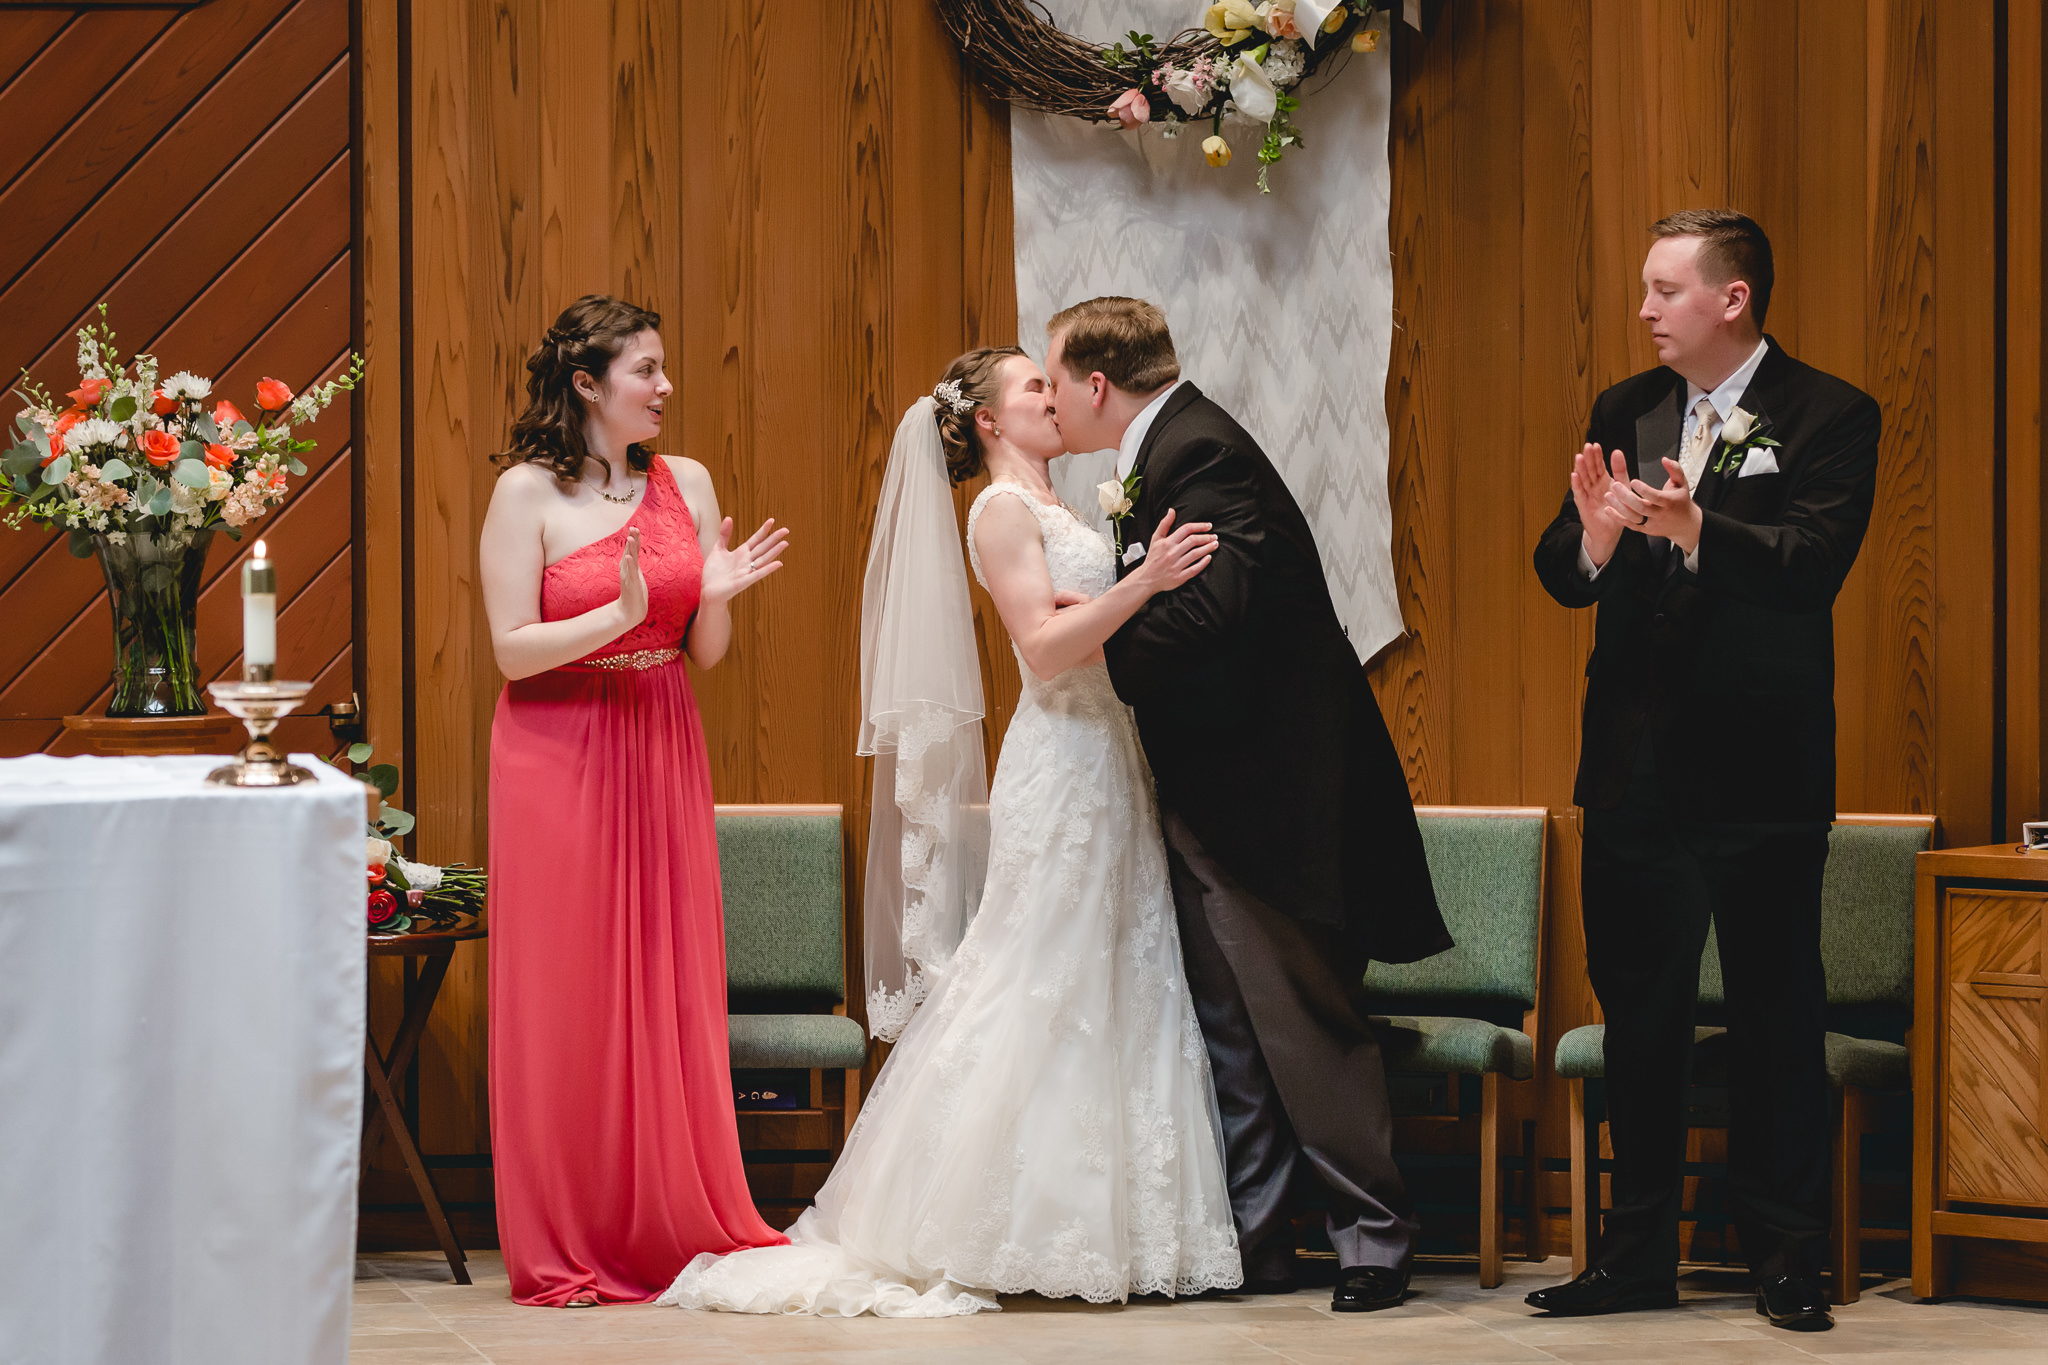 Bride & groom's first kiss at St. John Neumann Church in Pittsburgh PA wedding ceremony